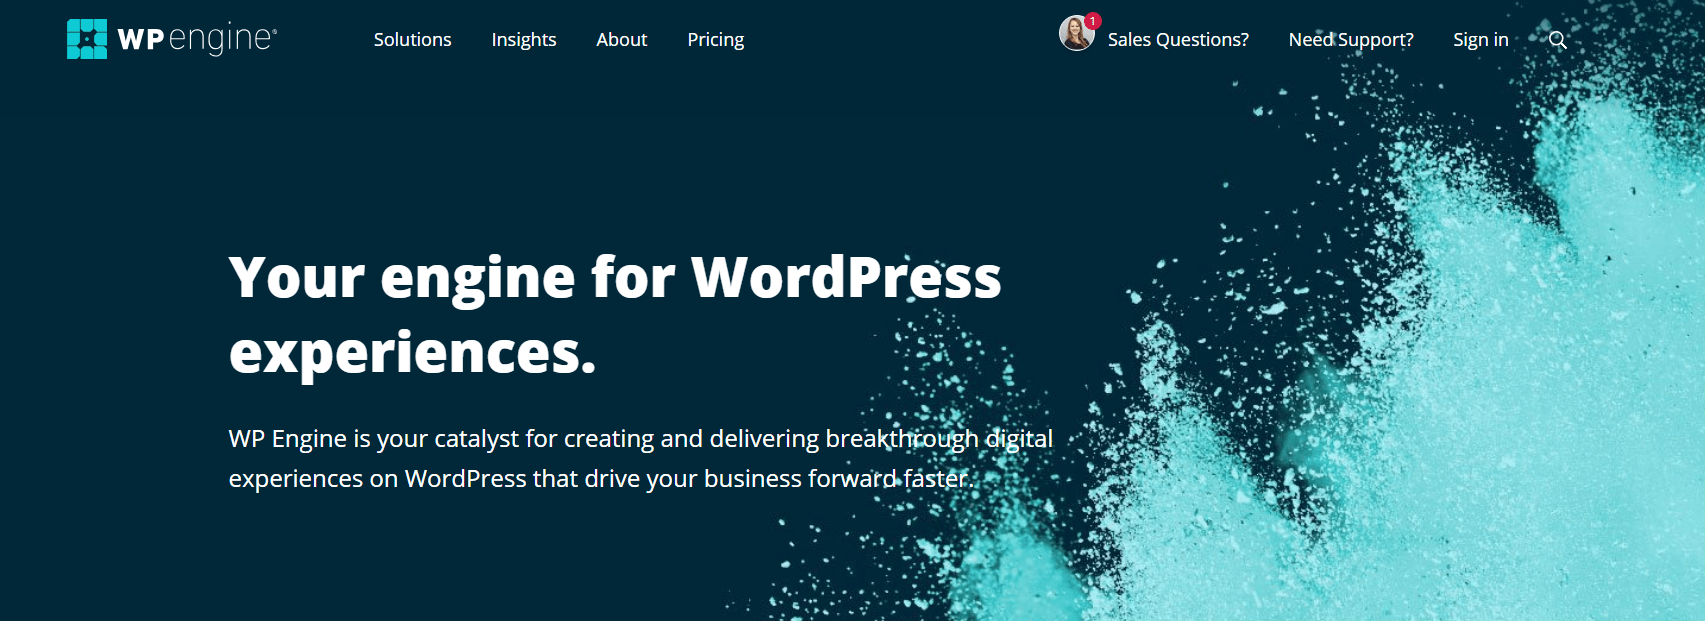 WordPress Hosting WP Engine Deals Mother'S Day June